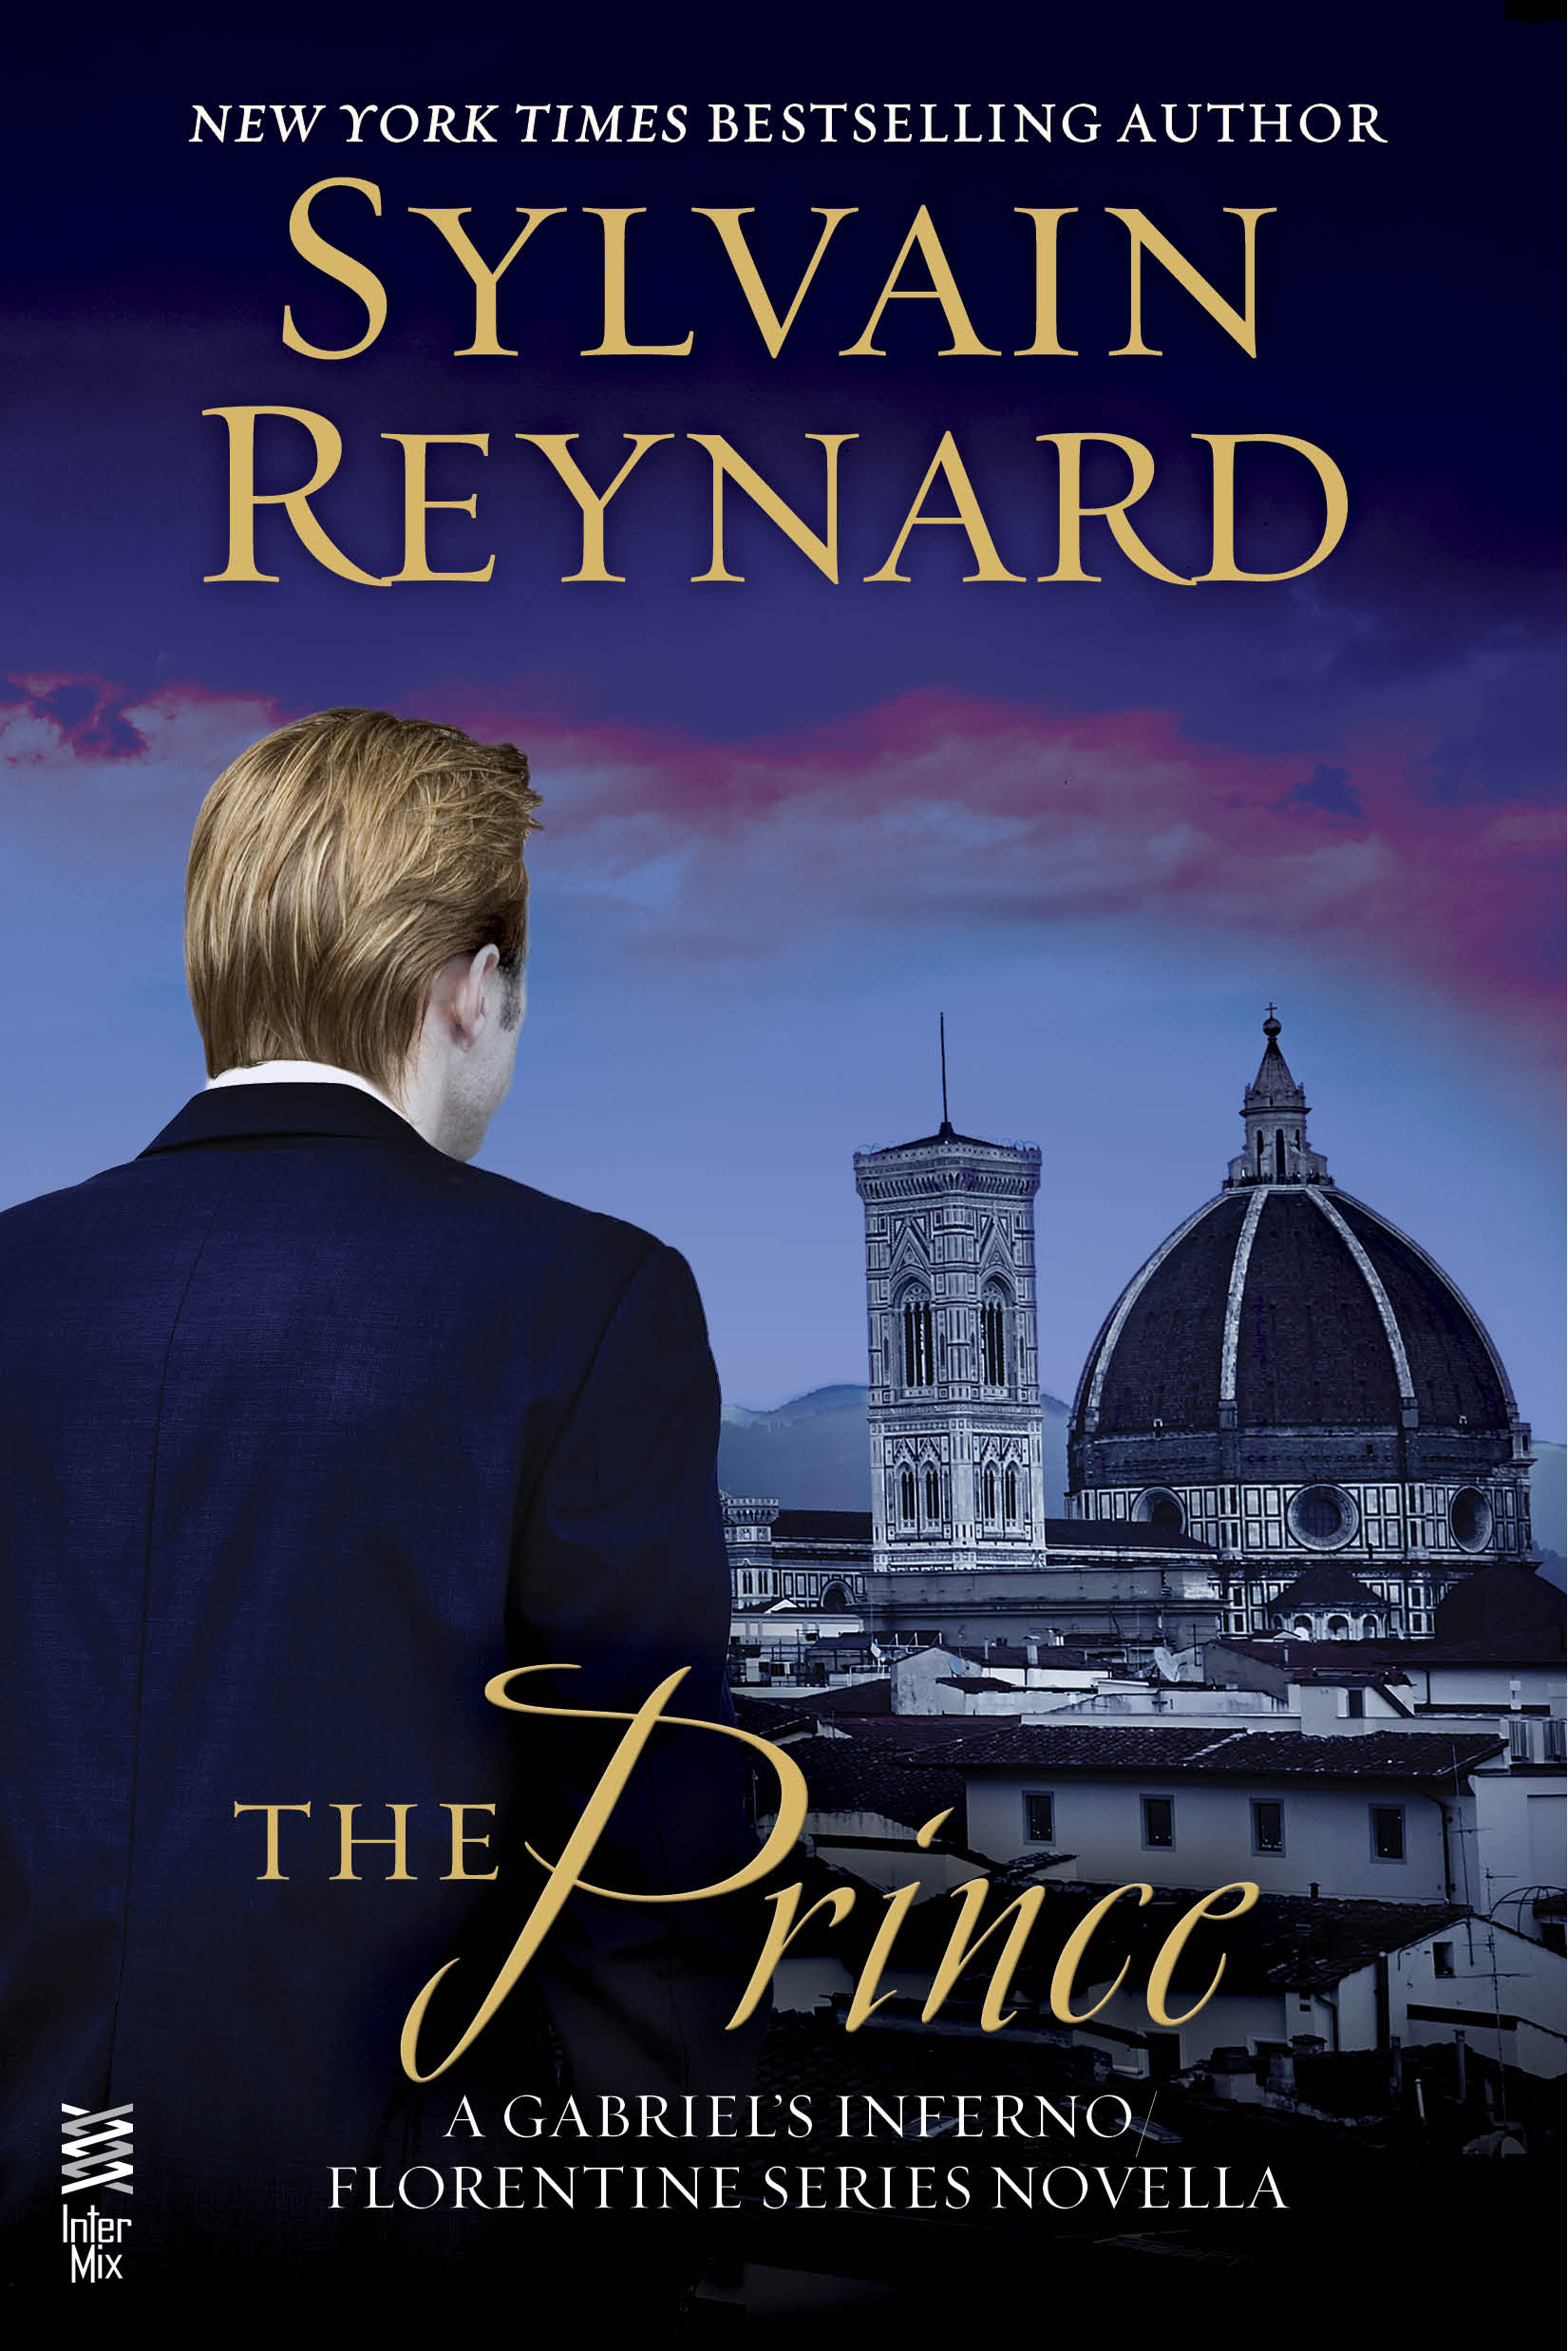 The Prince by Sylvain Reynard